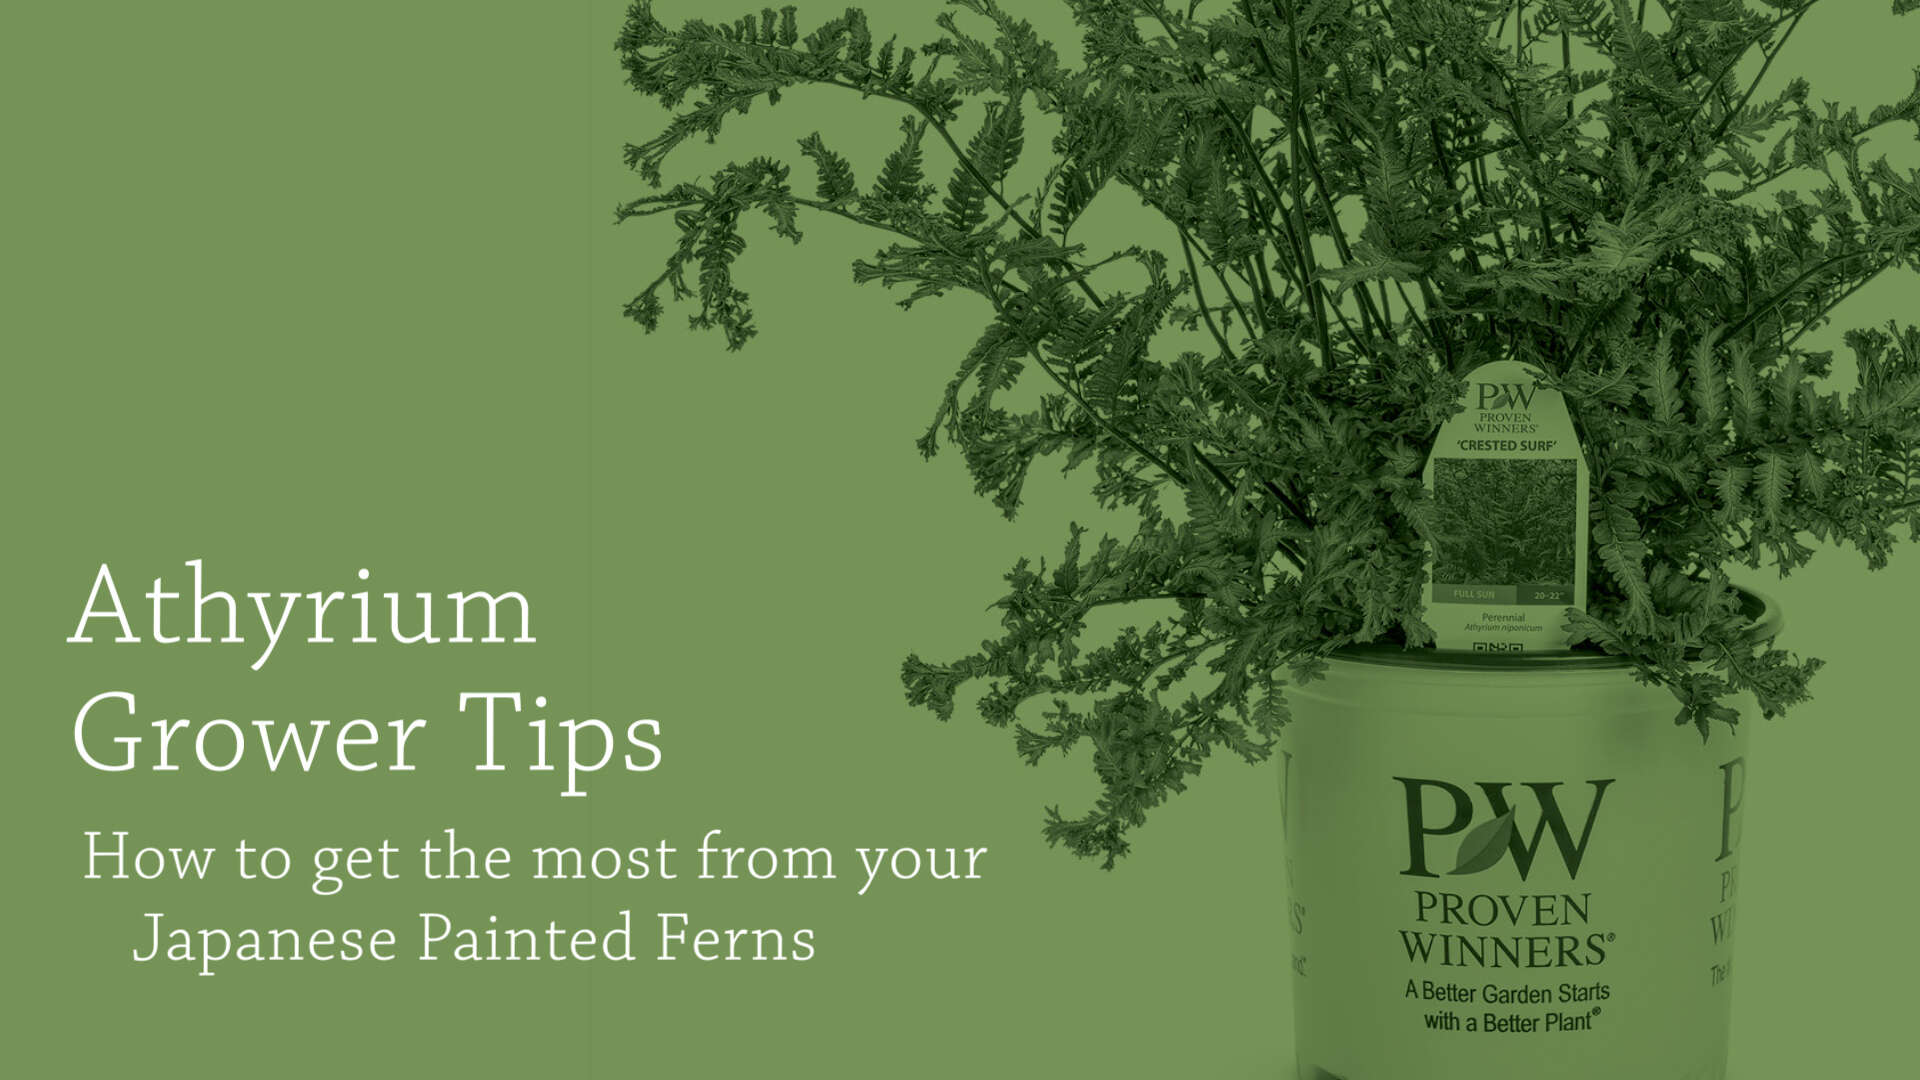 Japanese Painted Fern Grower Tips